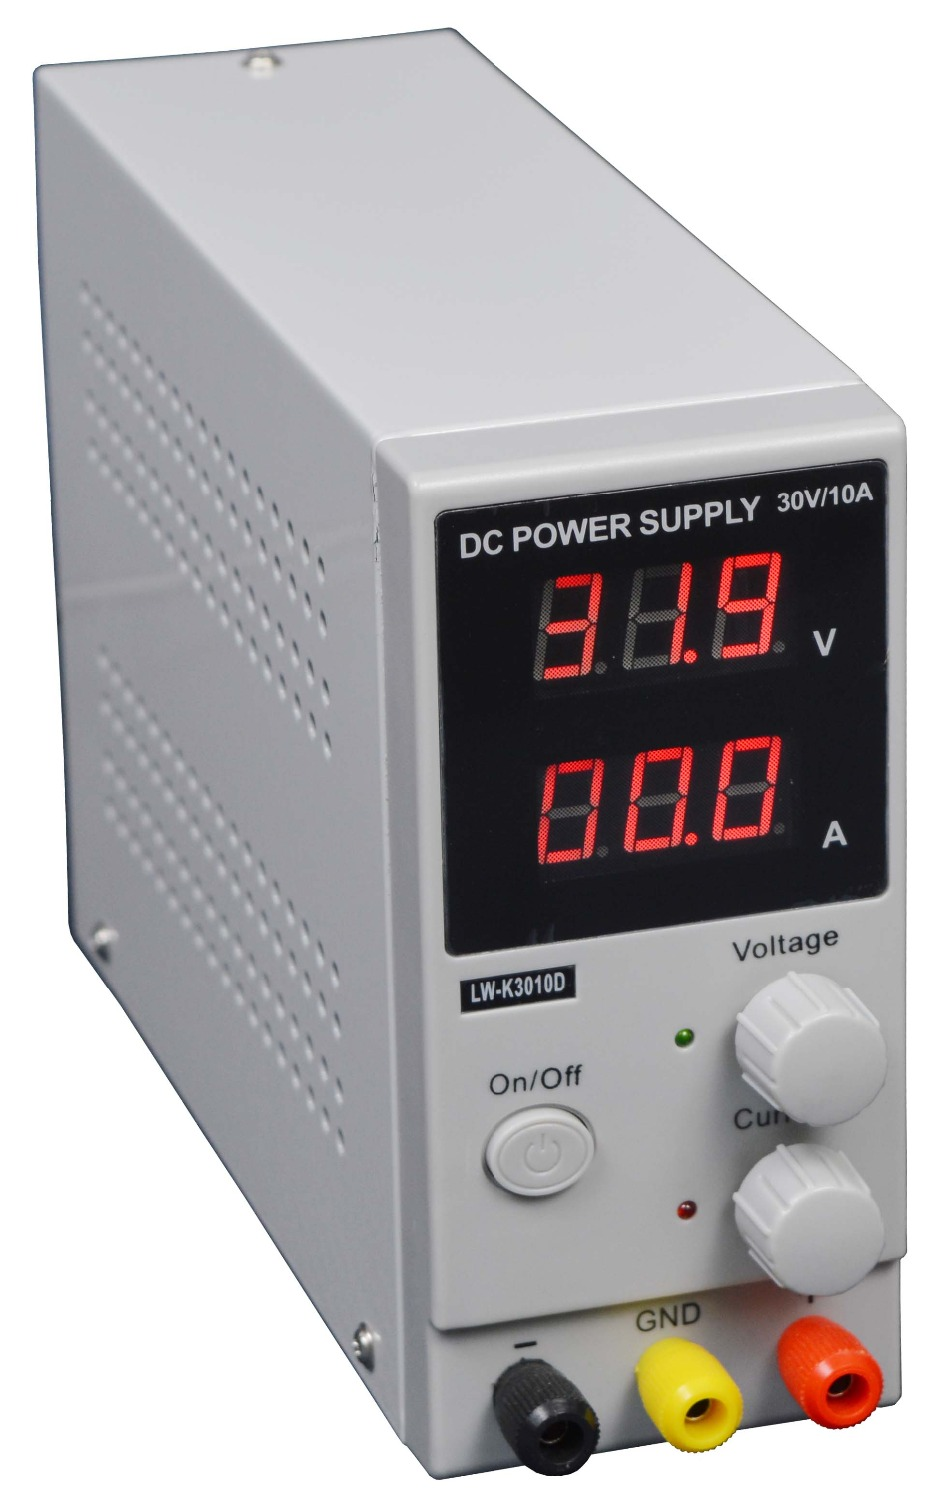 12PCS LW-3010D 110V 220V Mini Adjustable Digital DC power supply0~30V 0~10A ,Switching Power supply, certification,US/EU/AU Plug kps10010d high power adjustable switching dc power supply 0 100v 0 10a 110v 220v precision digital dc power supply us eu au plug